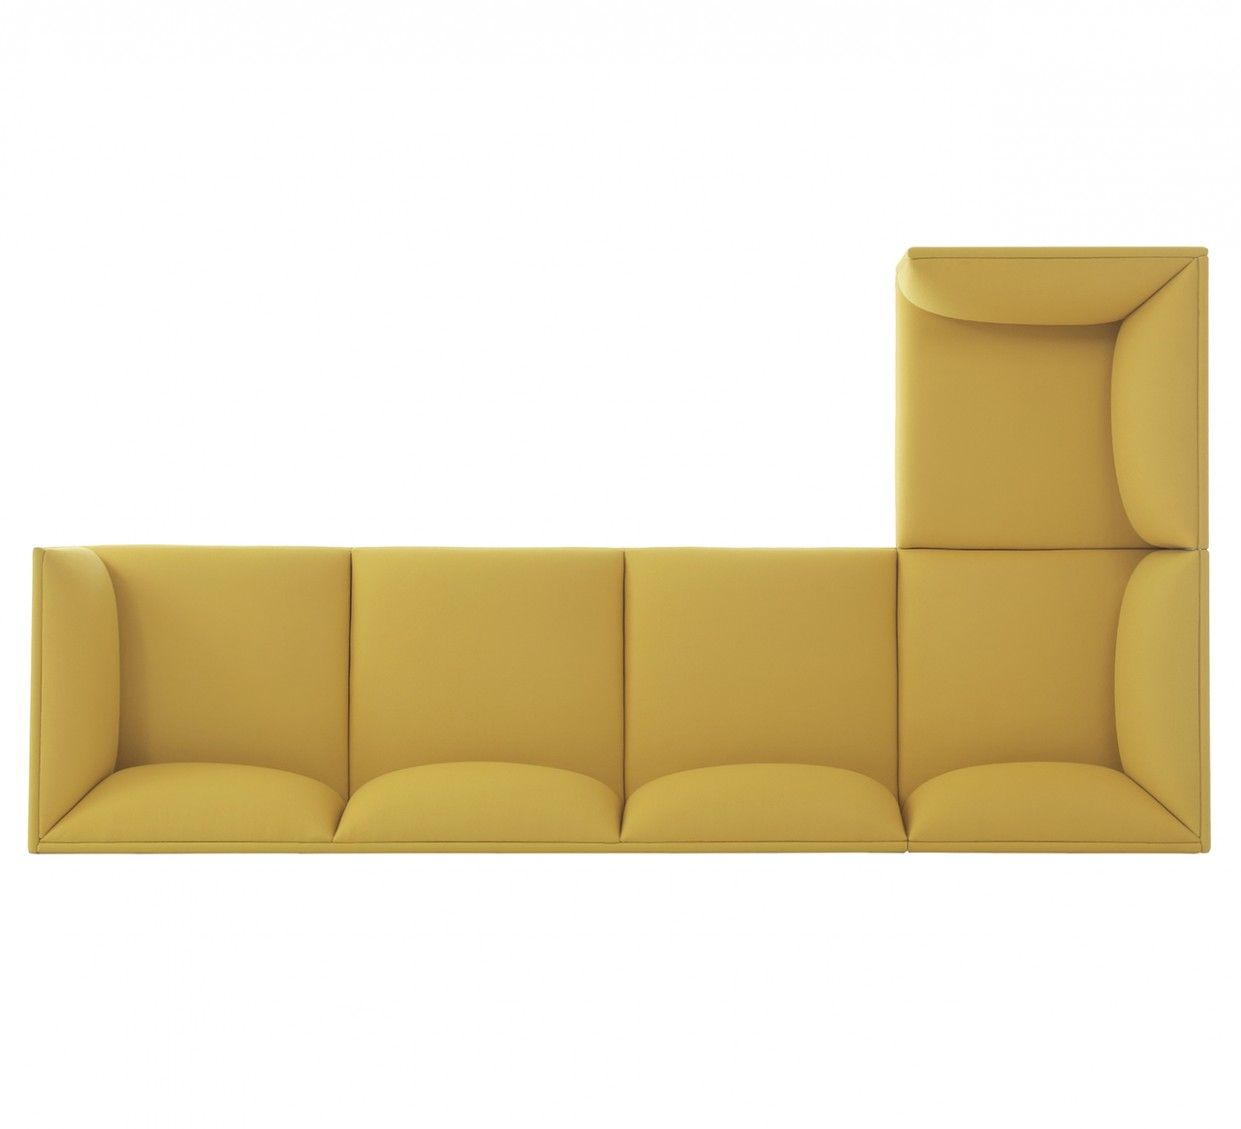 Seven Exciting Parts Of Attending L Shape Sofa Top View With Images L Shaped Sofa